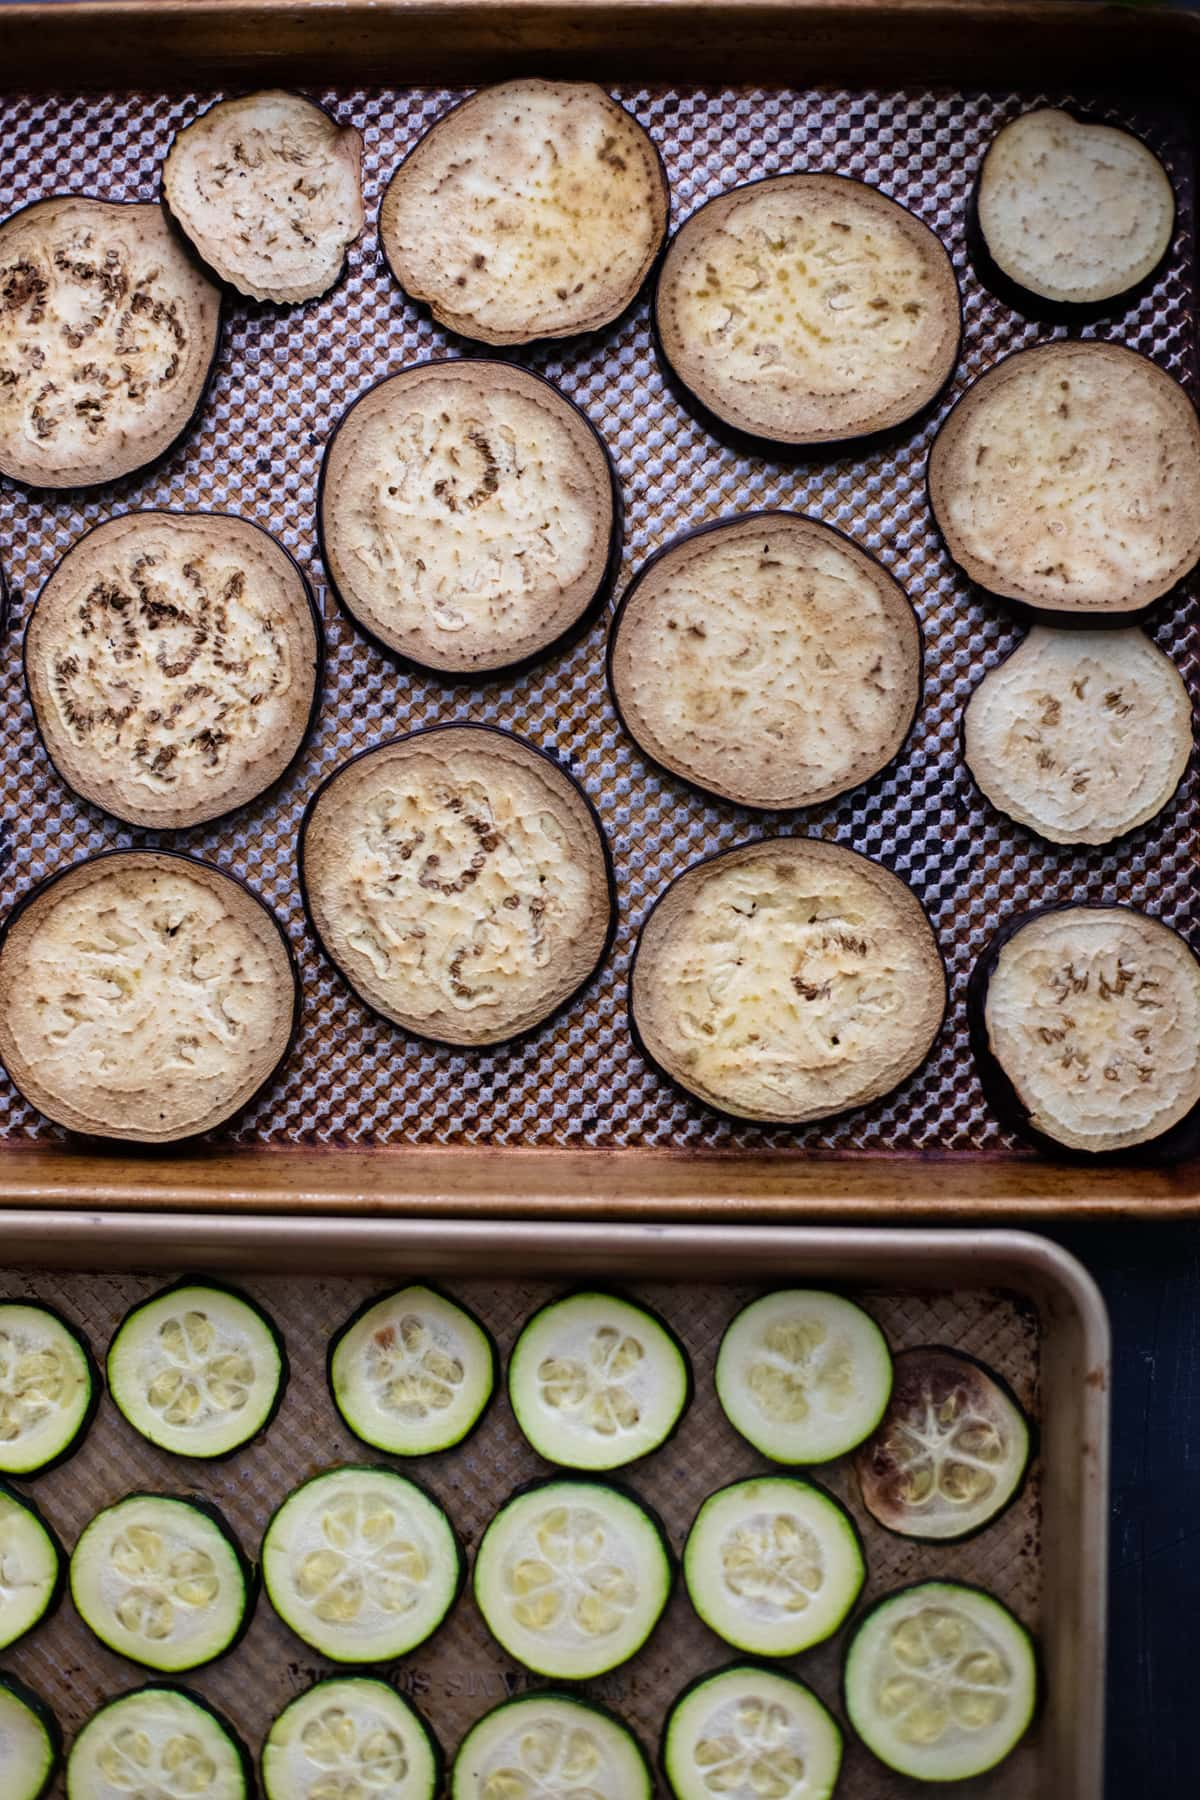 slices of roasted eggplant and zucchini arranged on sheet pans.